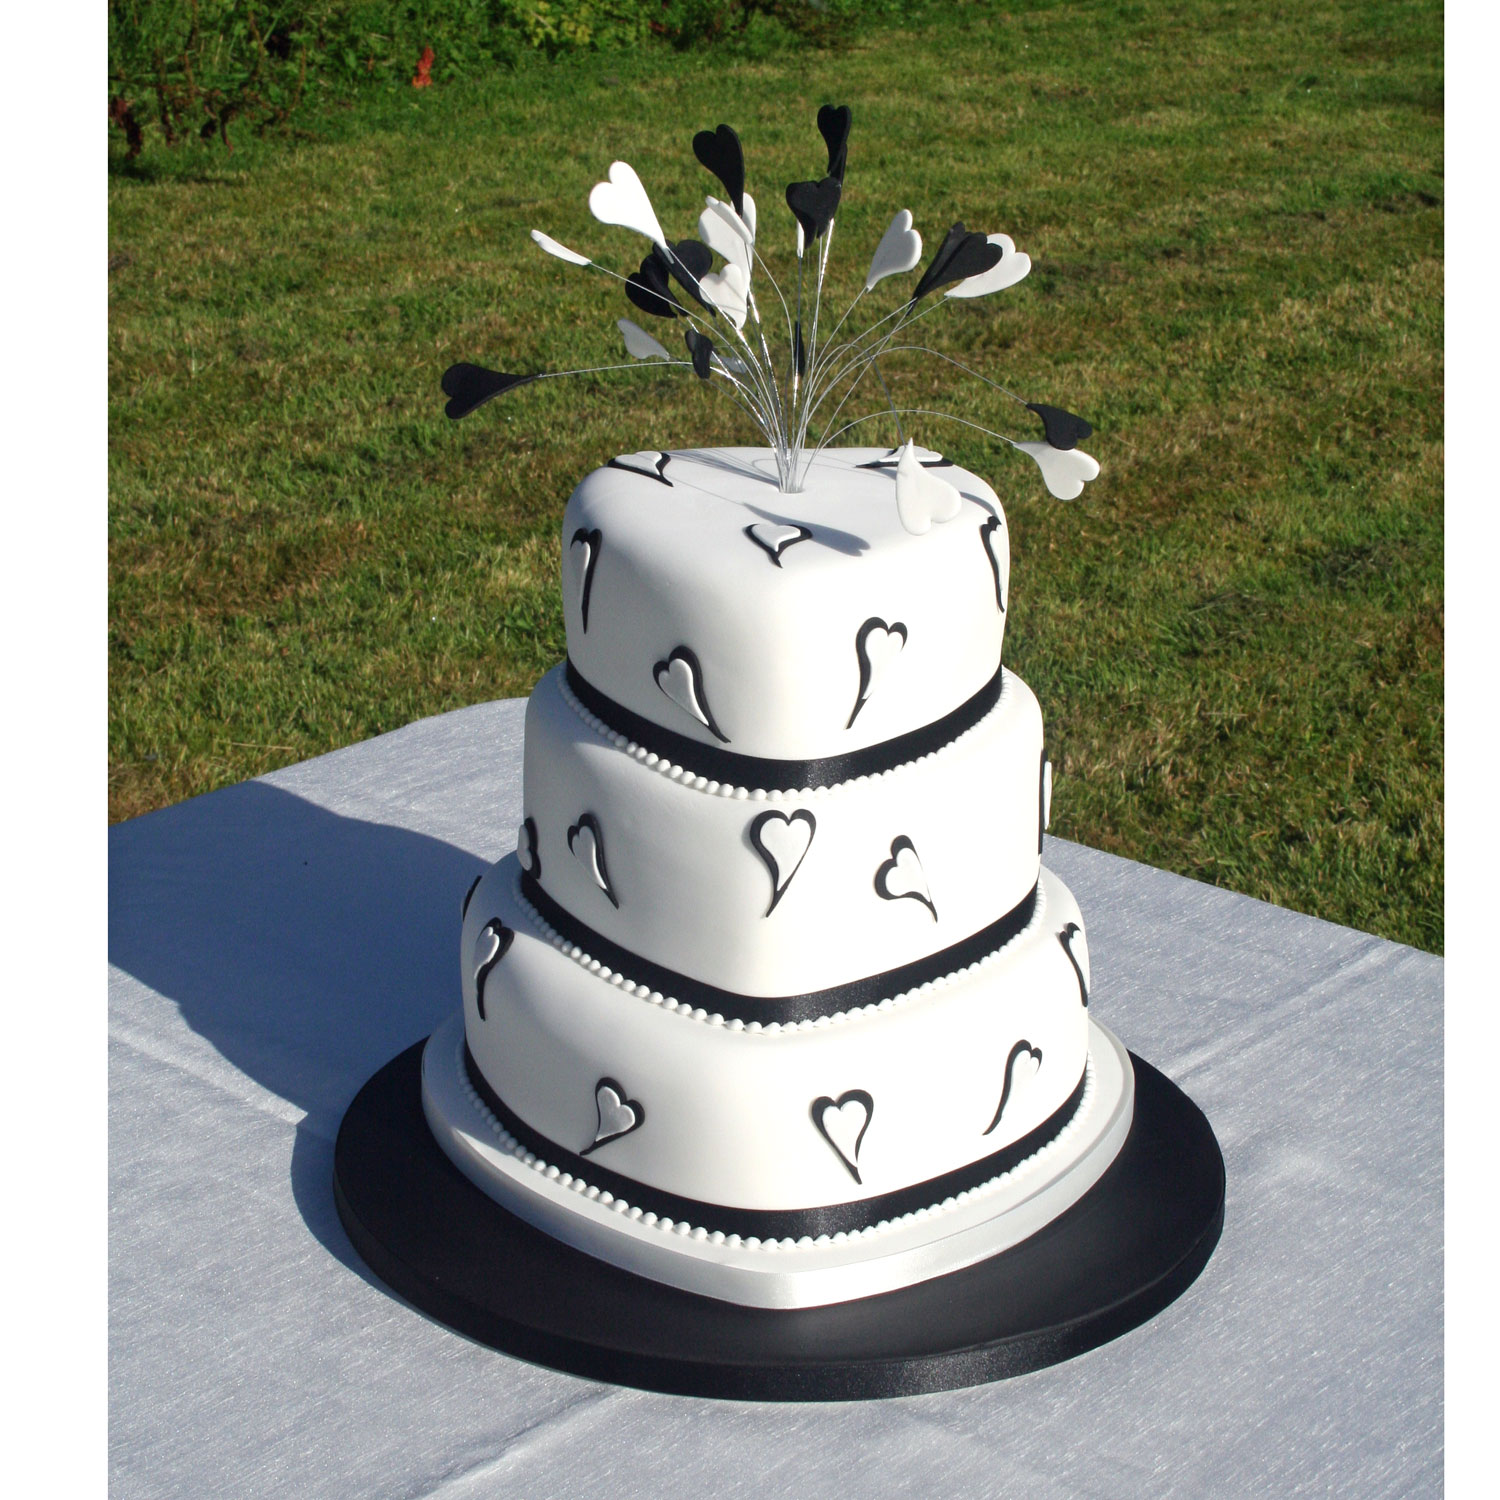 Two For Joy Black And White Wedding Cake 3 Tier Heart Shaped